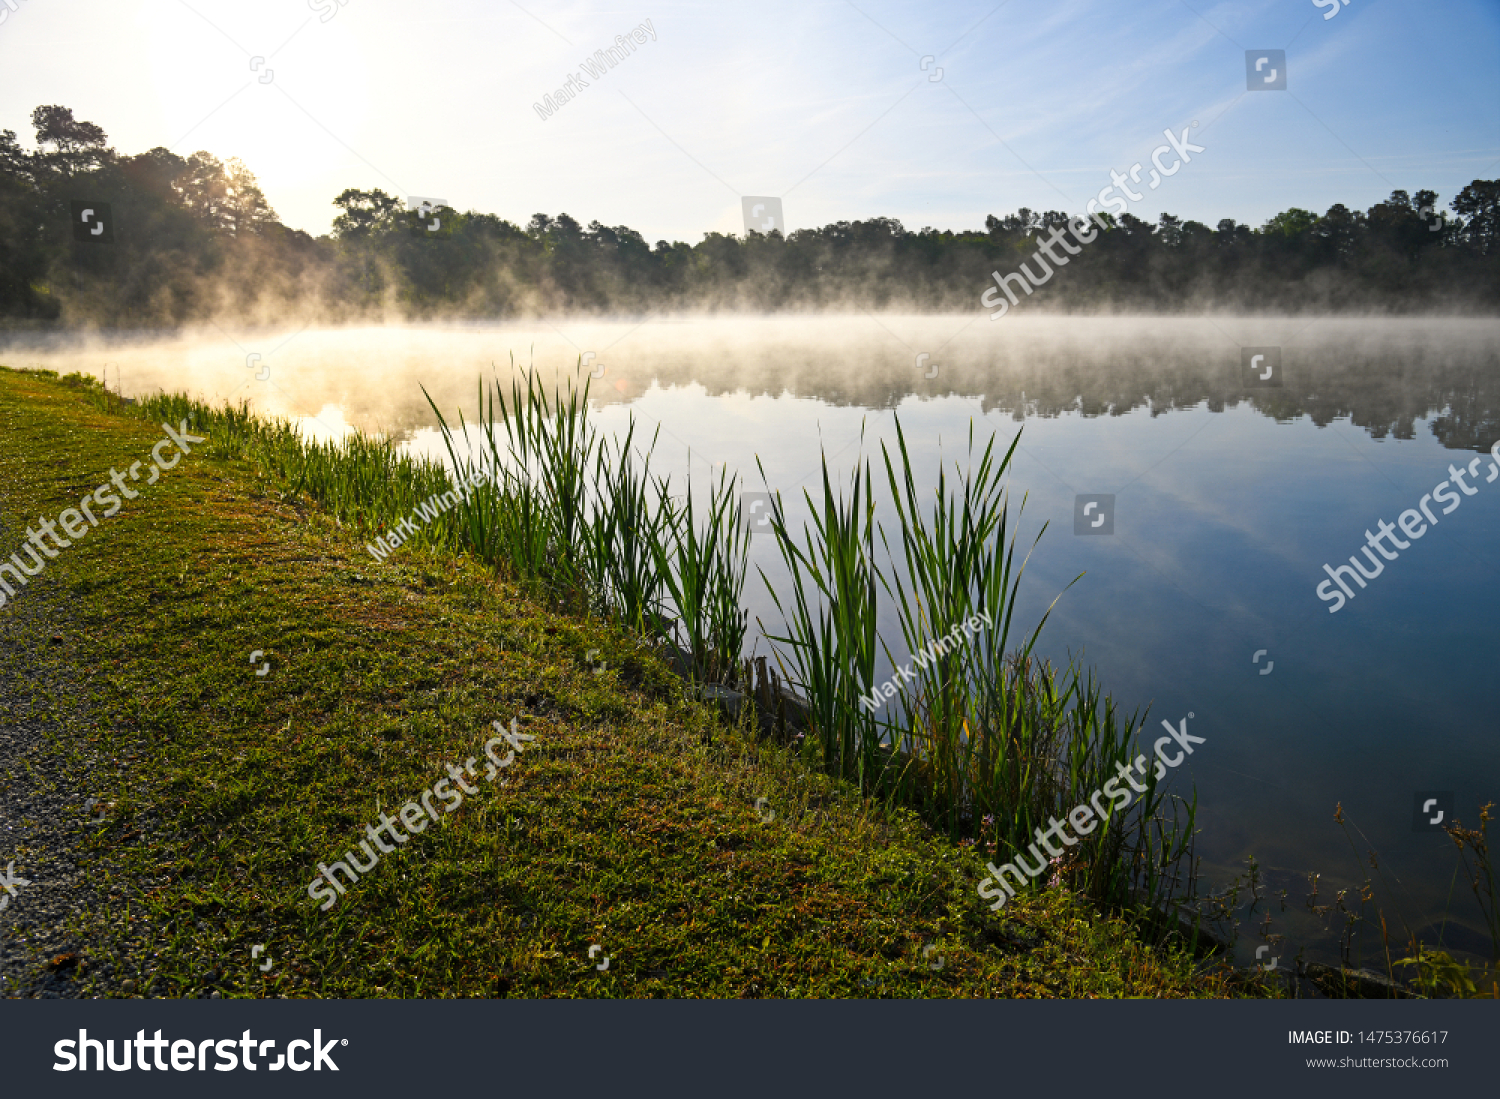 stock-photo-early-morning-fog-over-a-lak